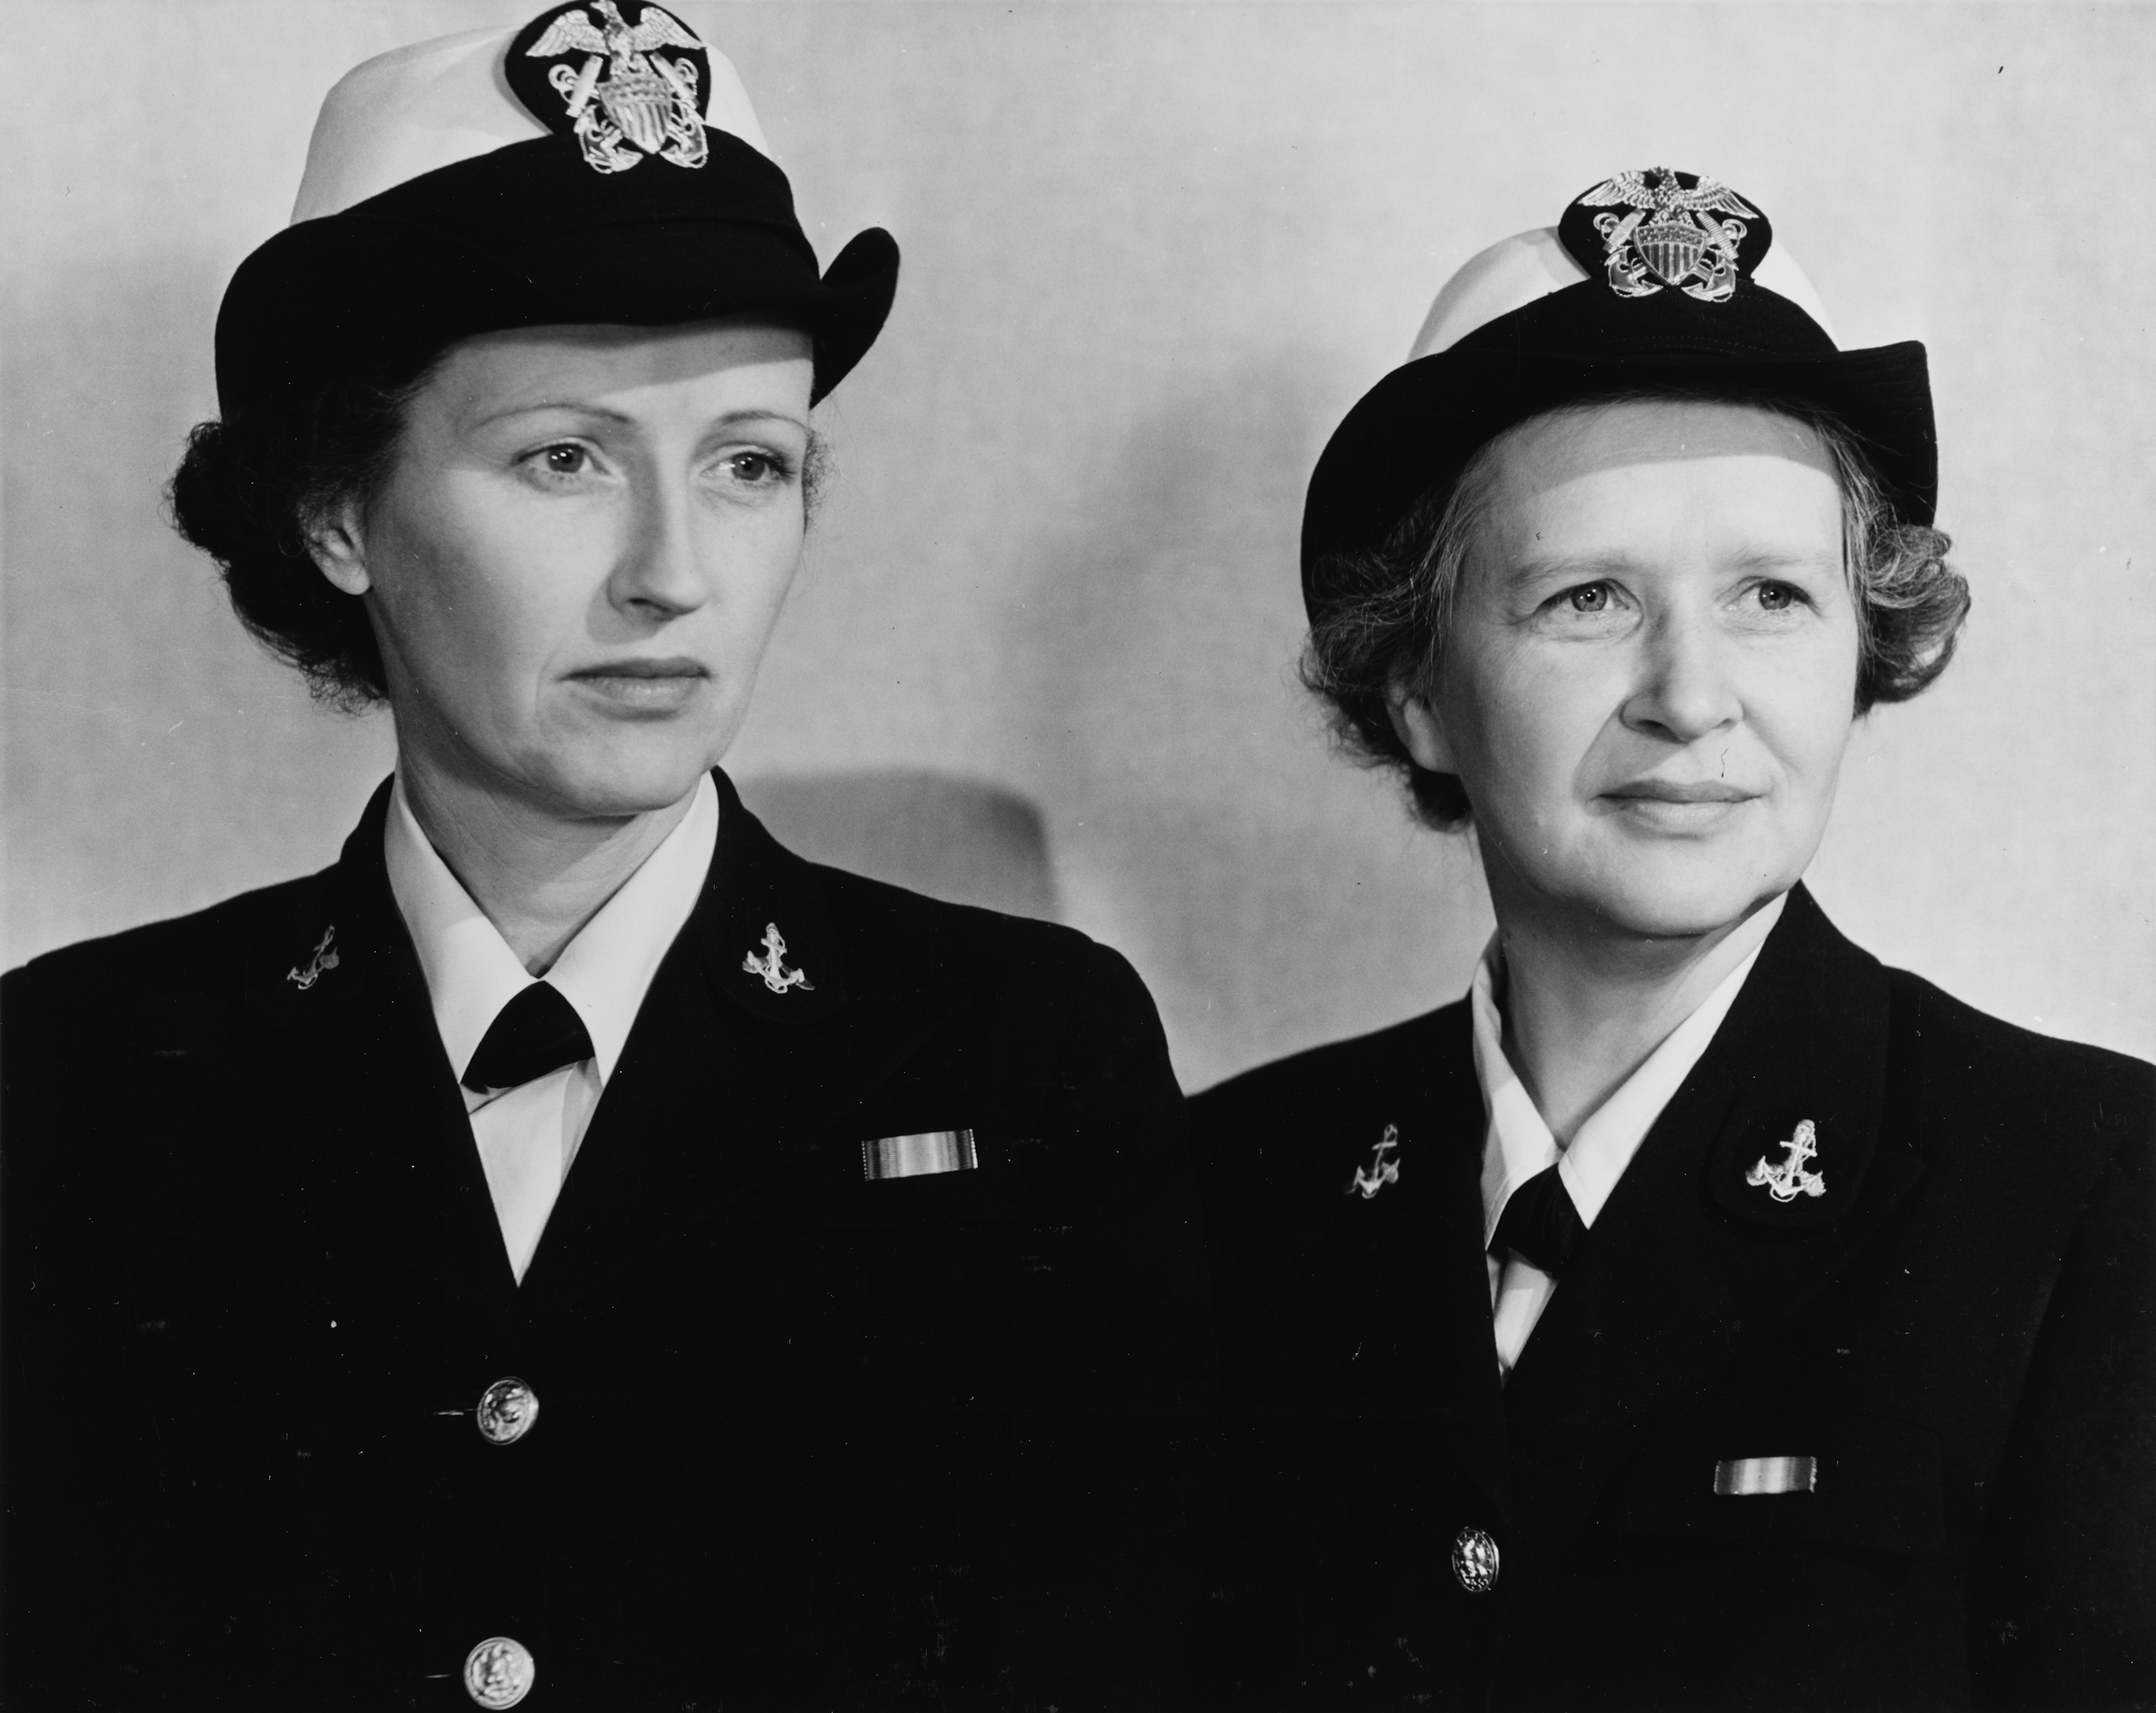 LCDR Joy Bright Hancock and LT Eunice Whyte